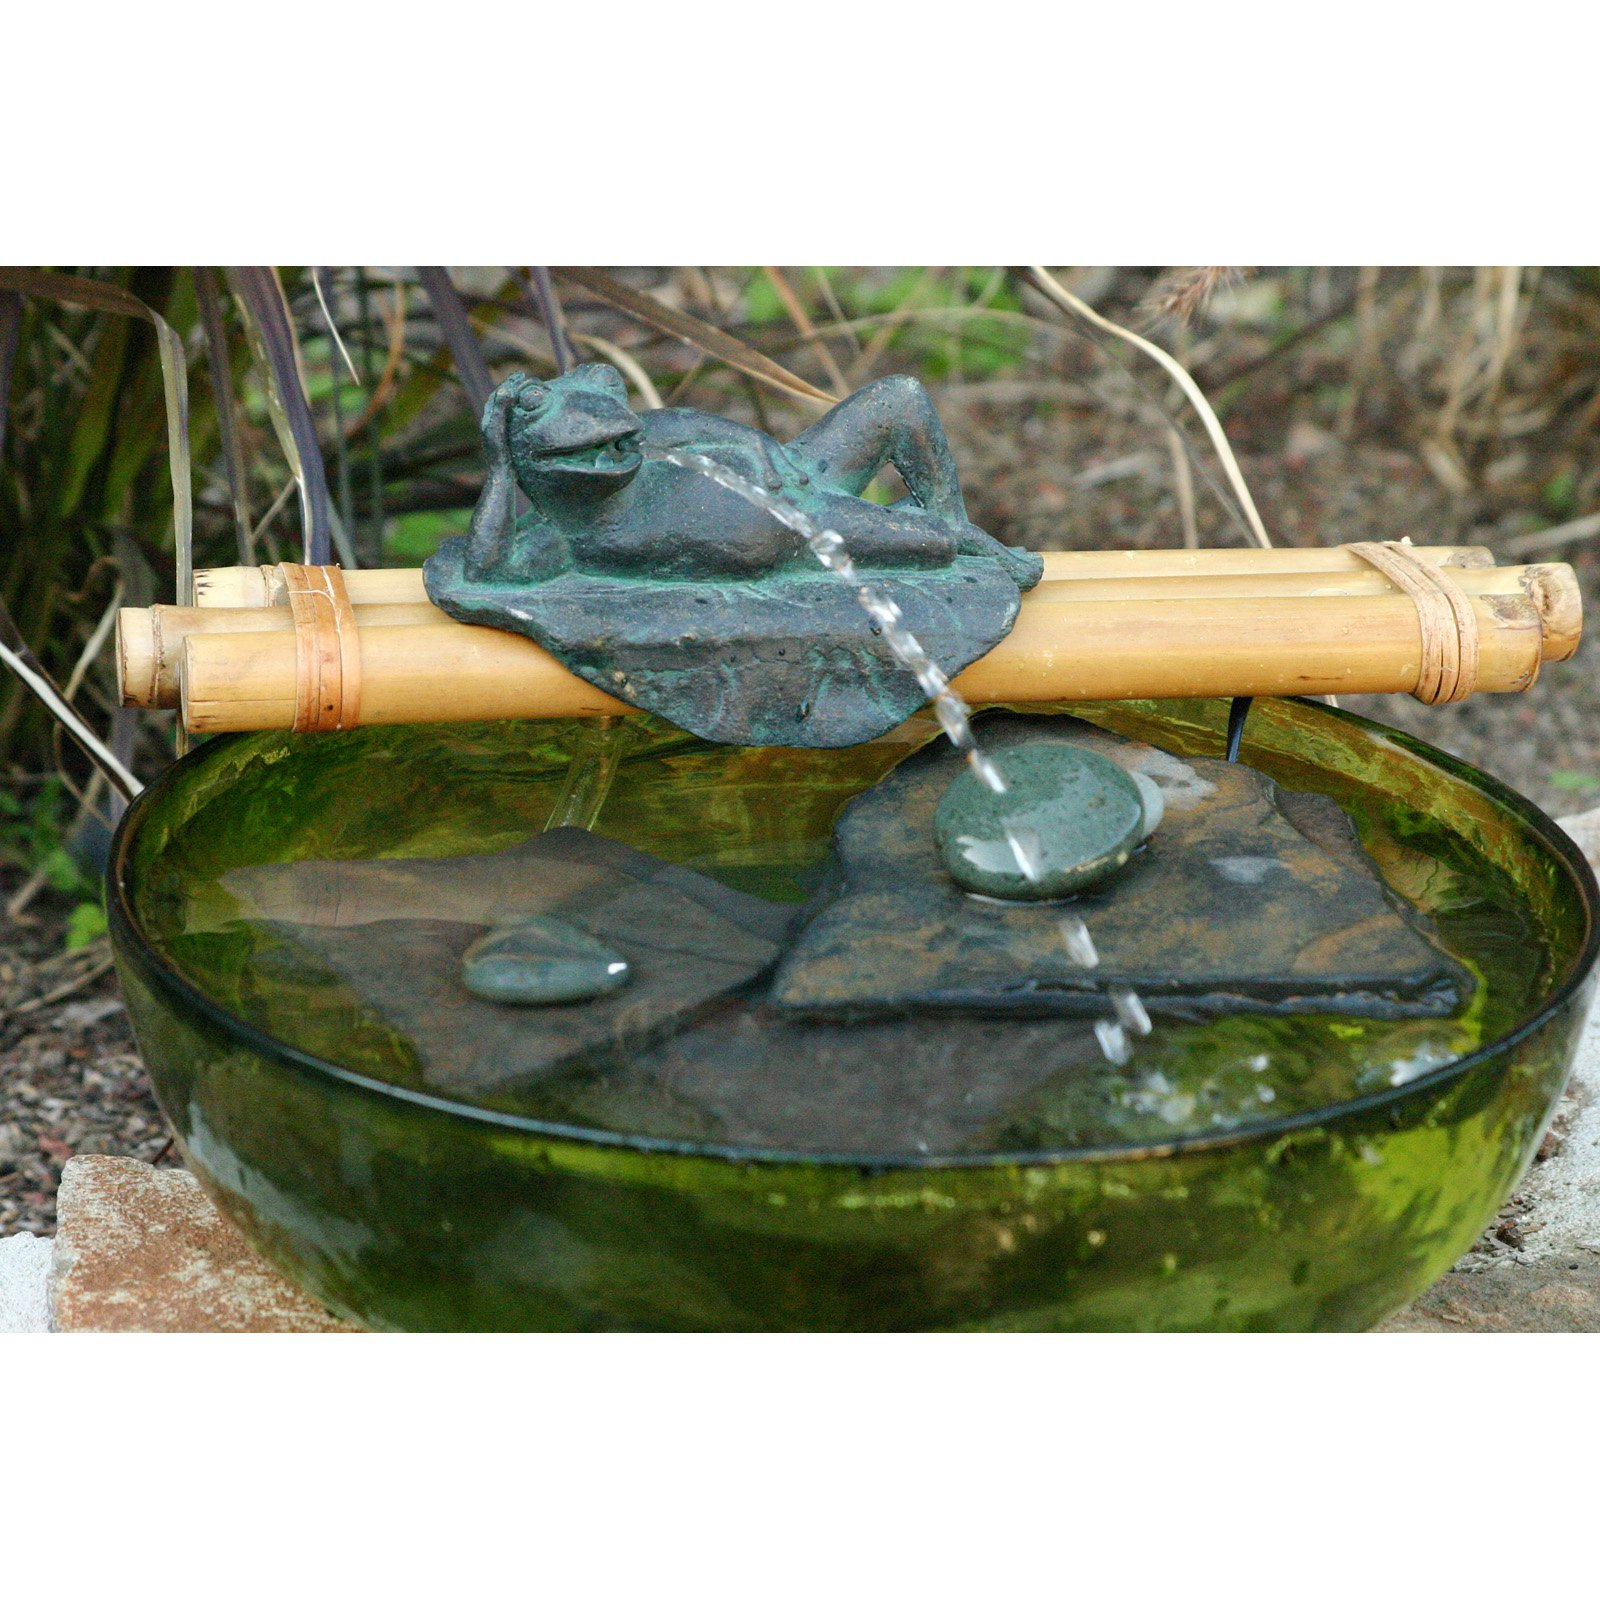 Bamboo Accents Frog Figurine On Spout and Pump Fountain Kit